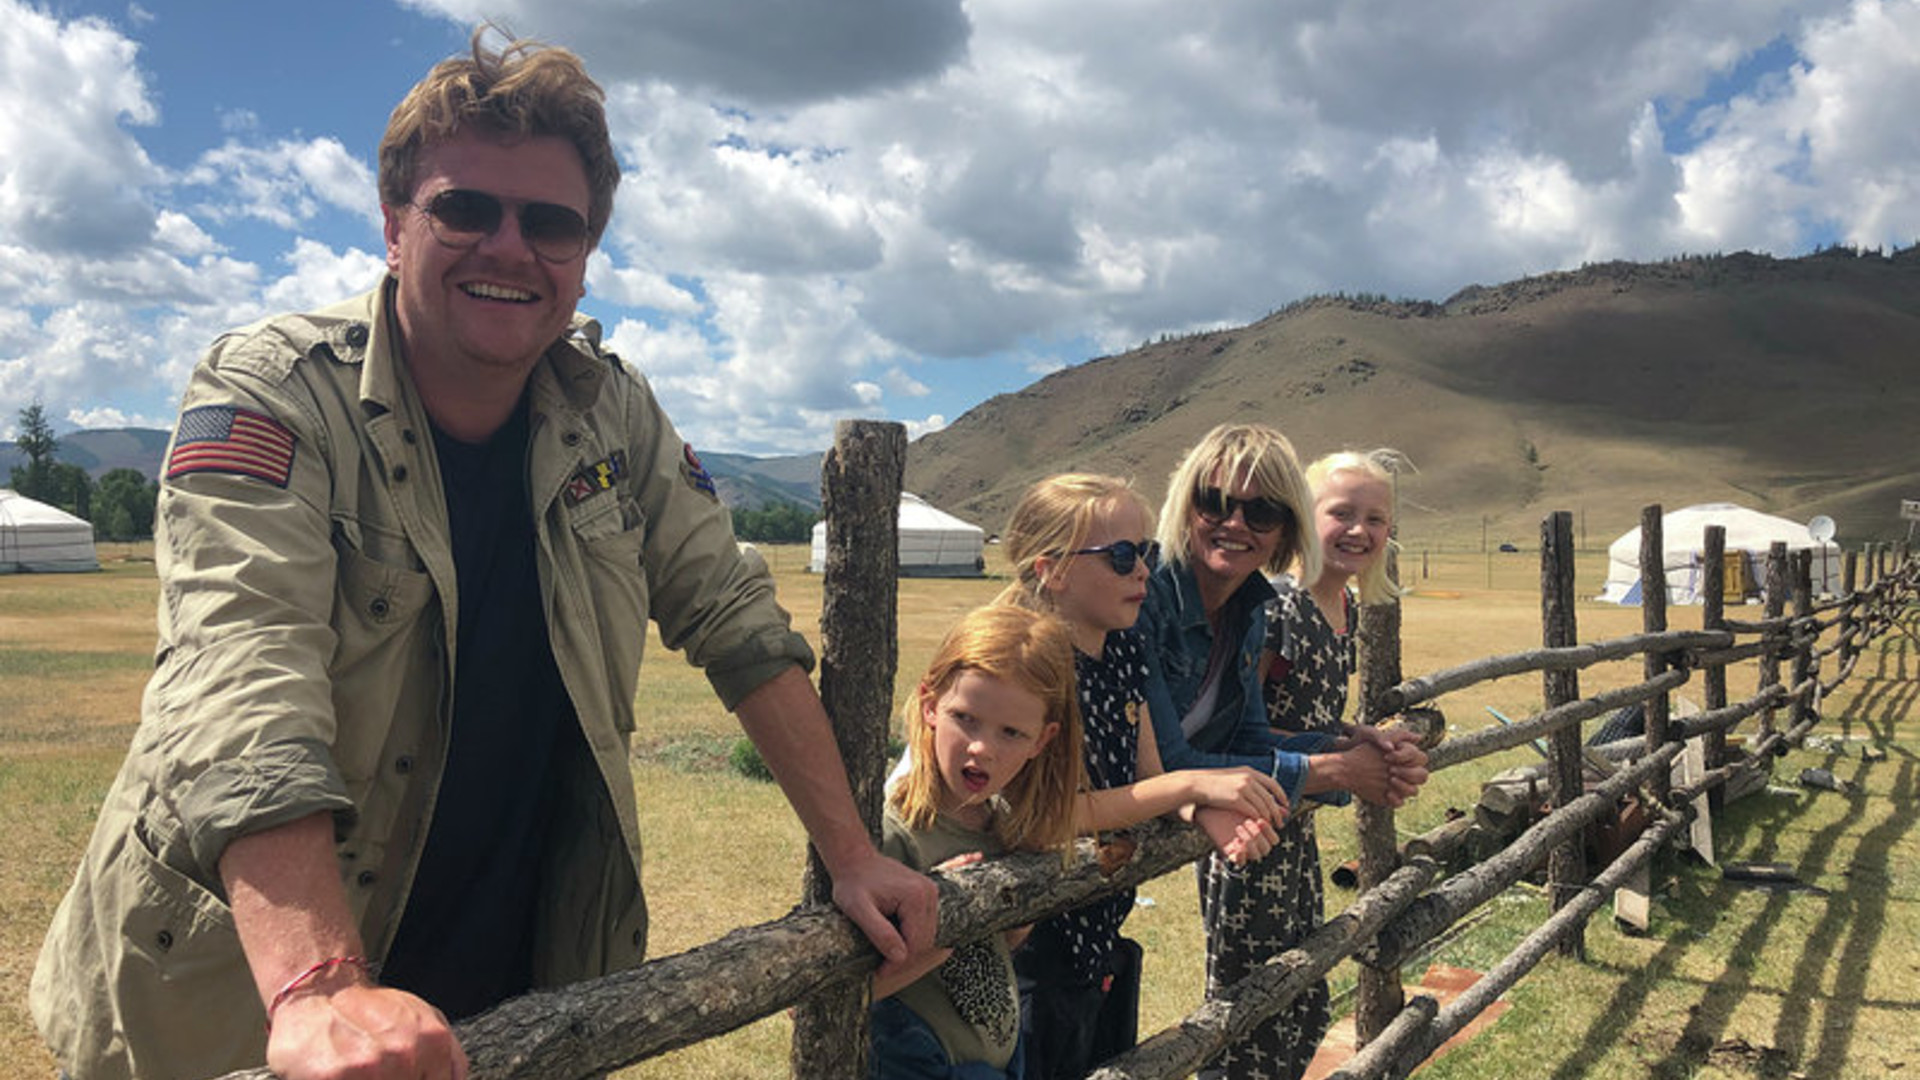 Ragas Reist Rond - A Family Journey through Mongolia - RTL Holland 2018